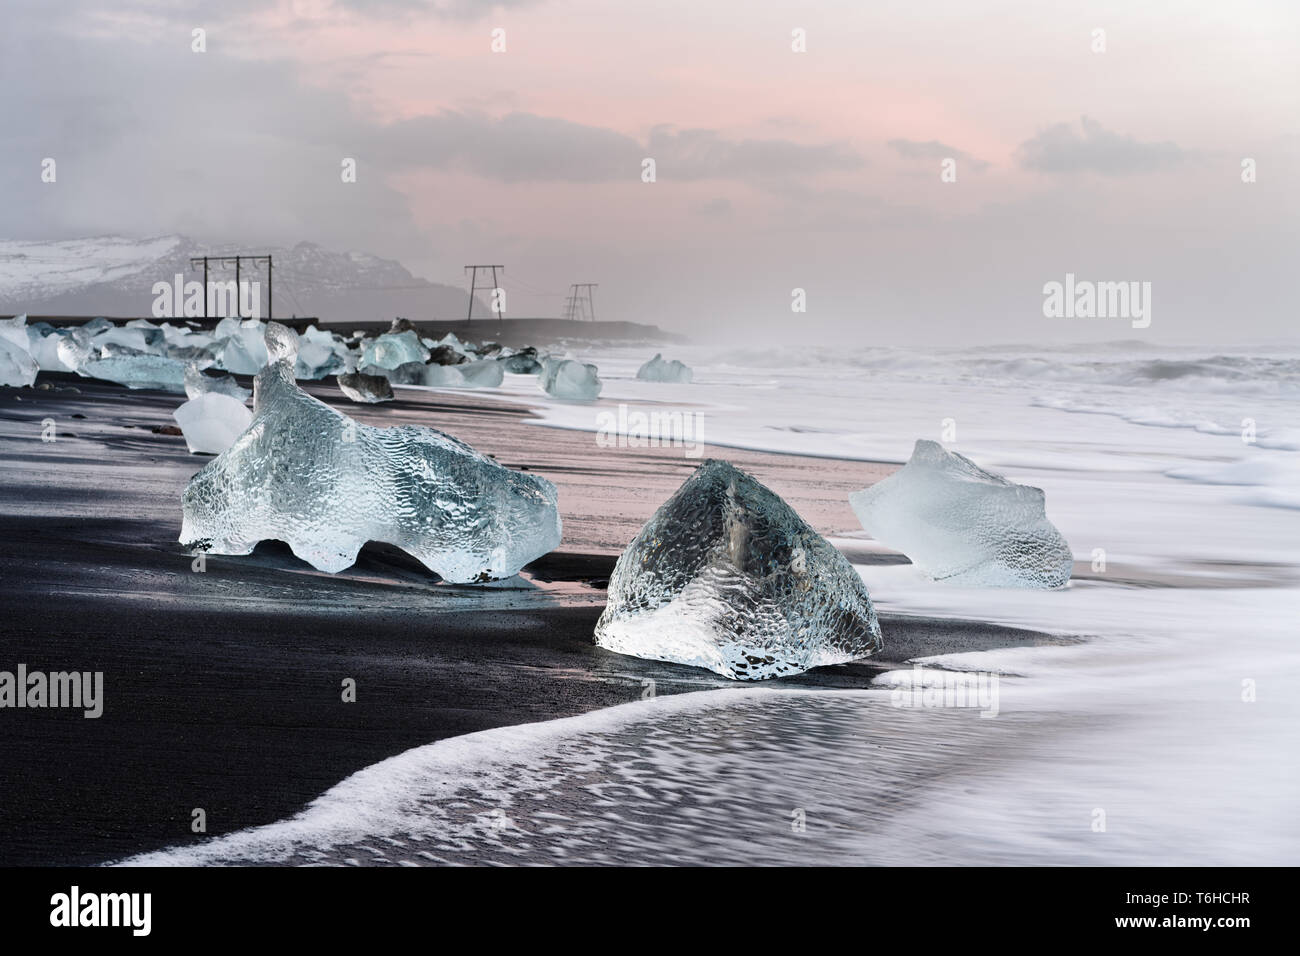 Ice blocks are picturesquely located on a black volcanic beach, the movement of the waves can be seen (long time exposure), above it a cloudy sky with - Stock Image